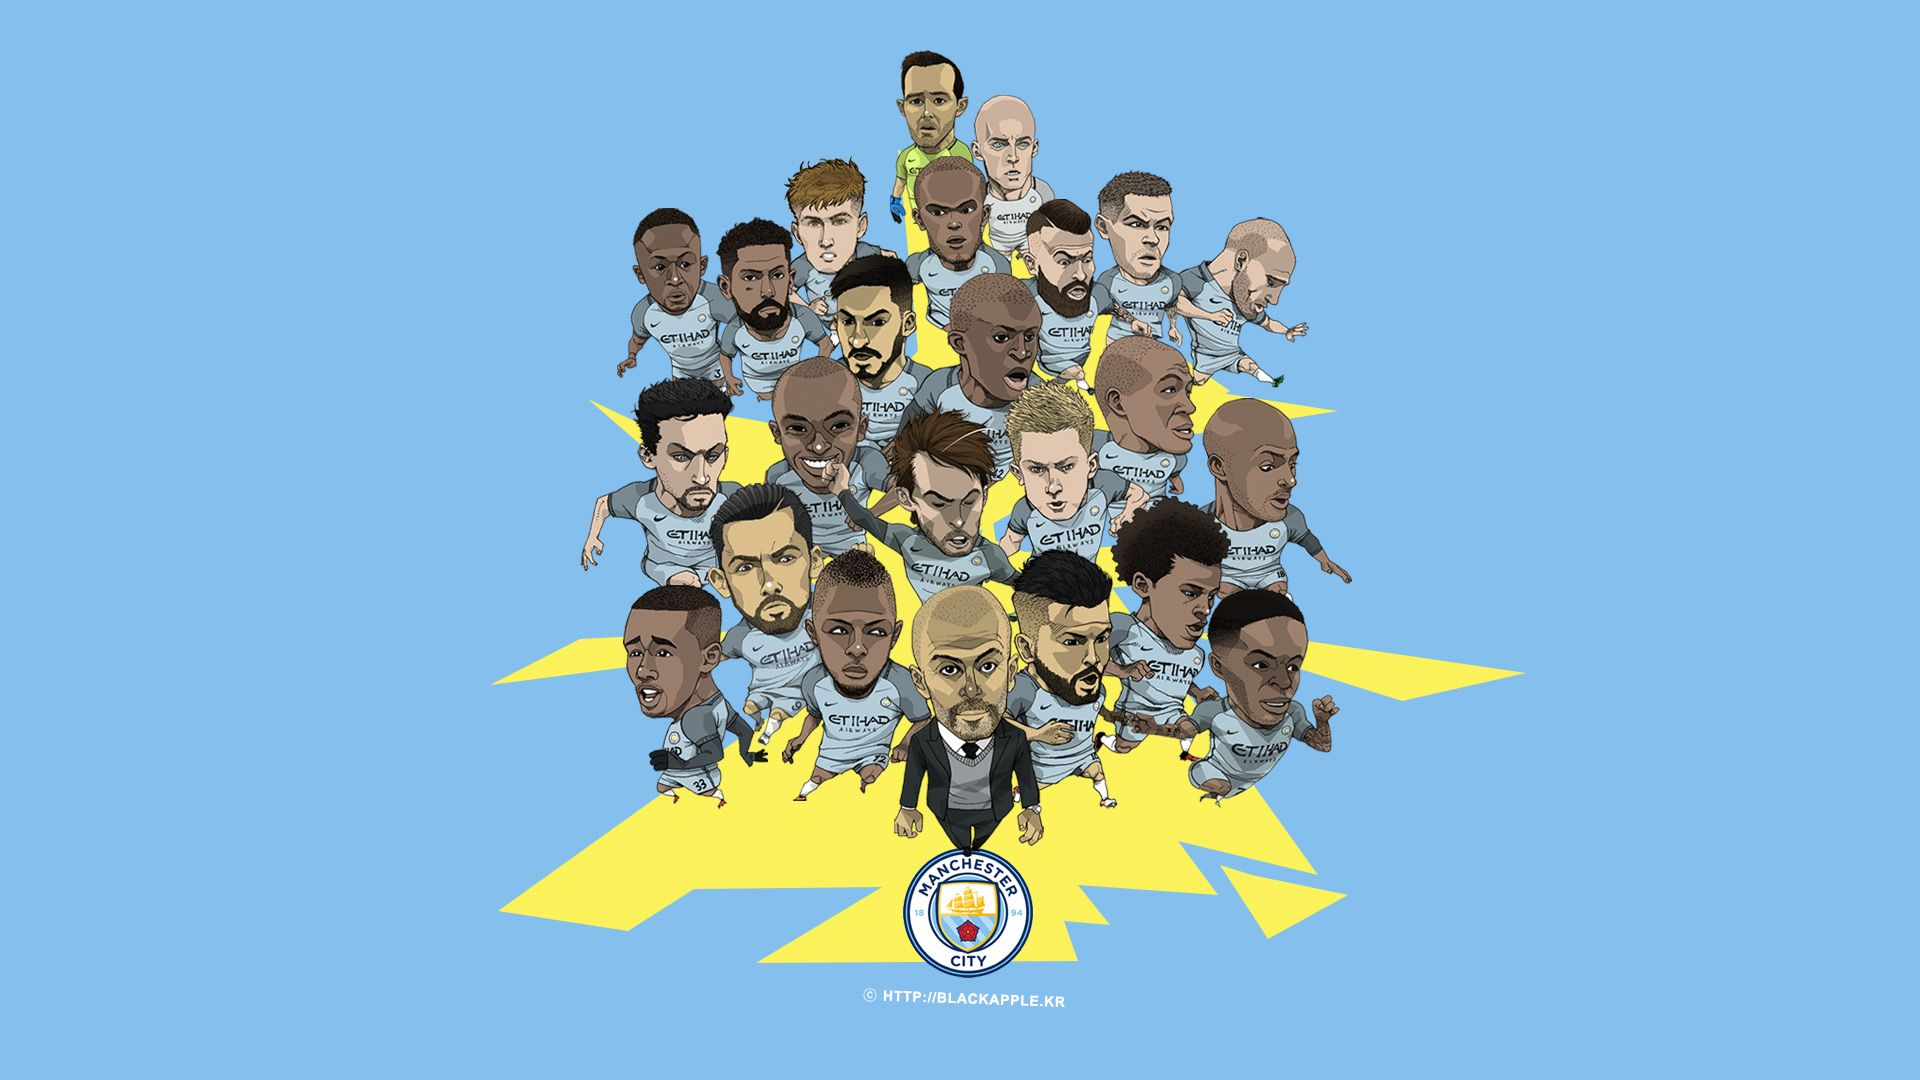 Manchester City Full Squad Fan Art For Pc Wallpaper Manchester City Logo Manchester City Wallpaper Manchester City